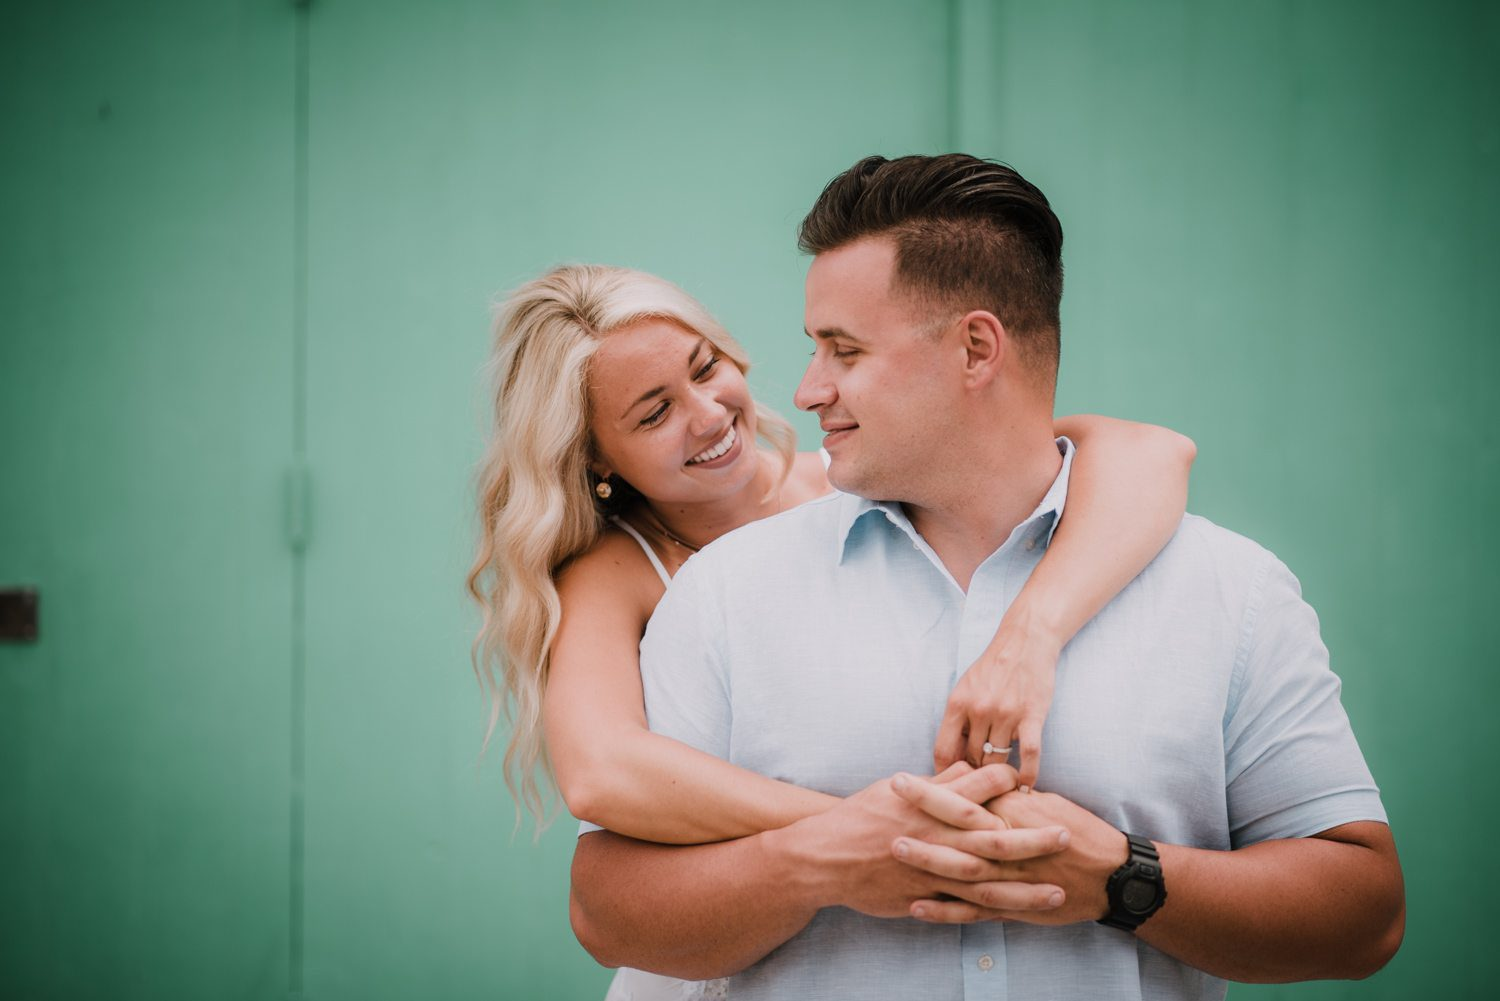 fort zachary taylor snipes key west engagement 9 - Key West Engagement Session - Cecilia & Dominick